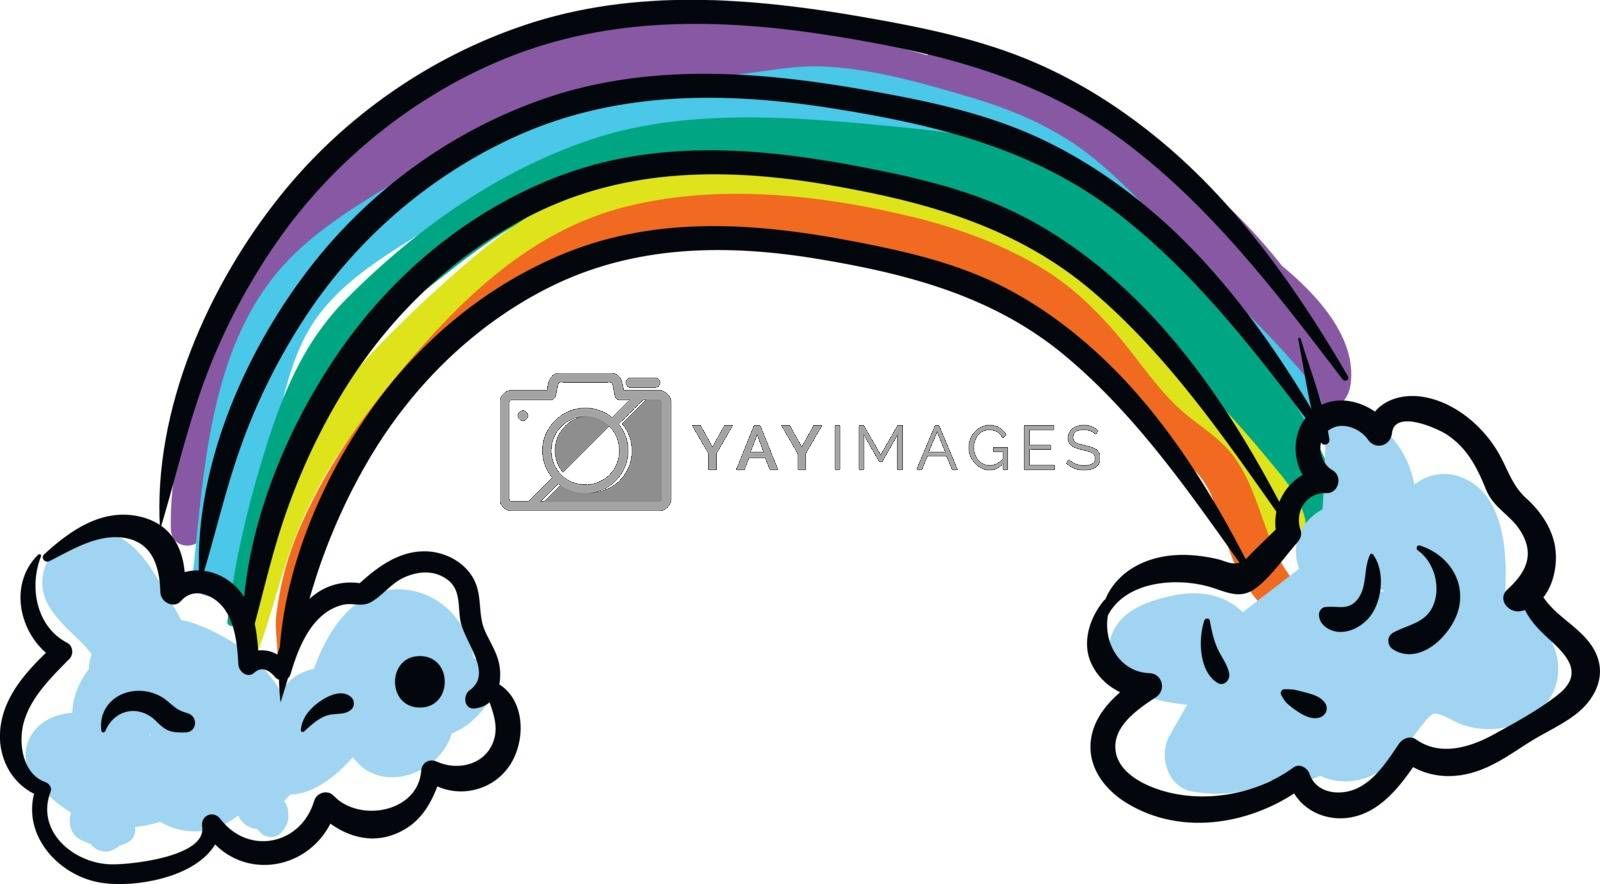 Royalty free image of Clipart of a colorful rainbow vector or color illustration by Morphart